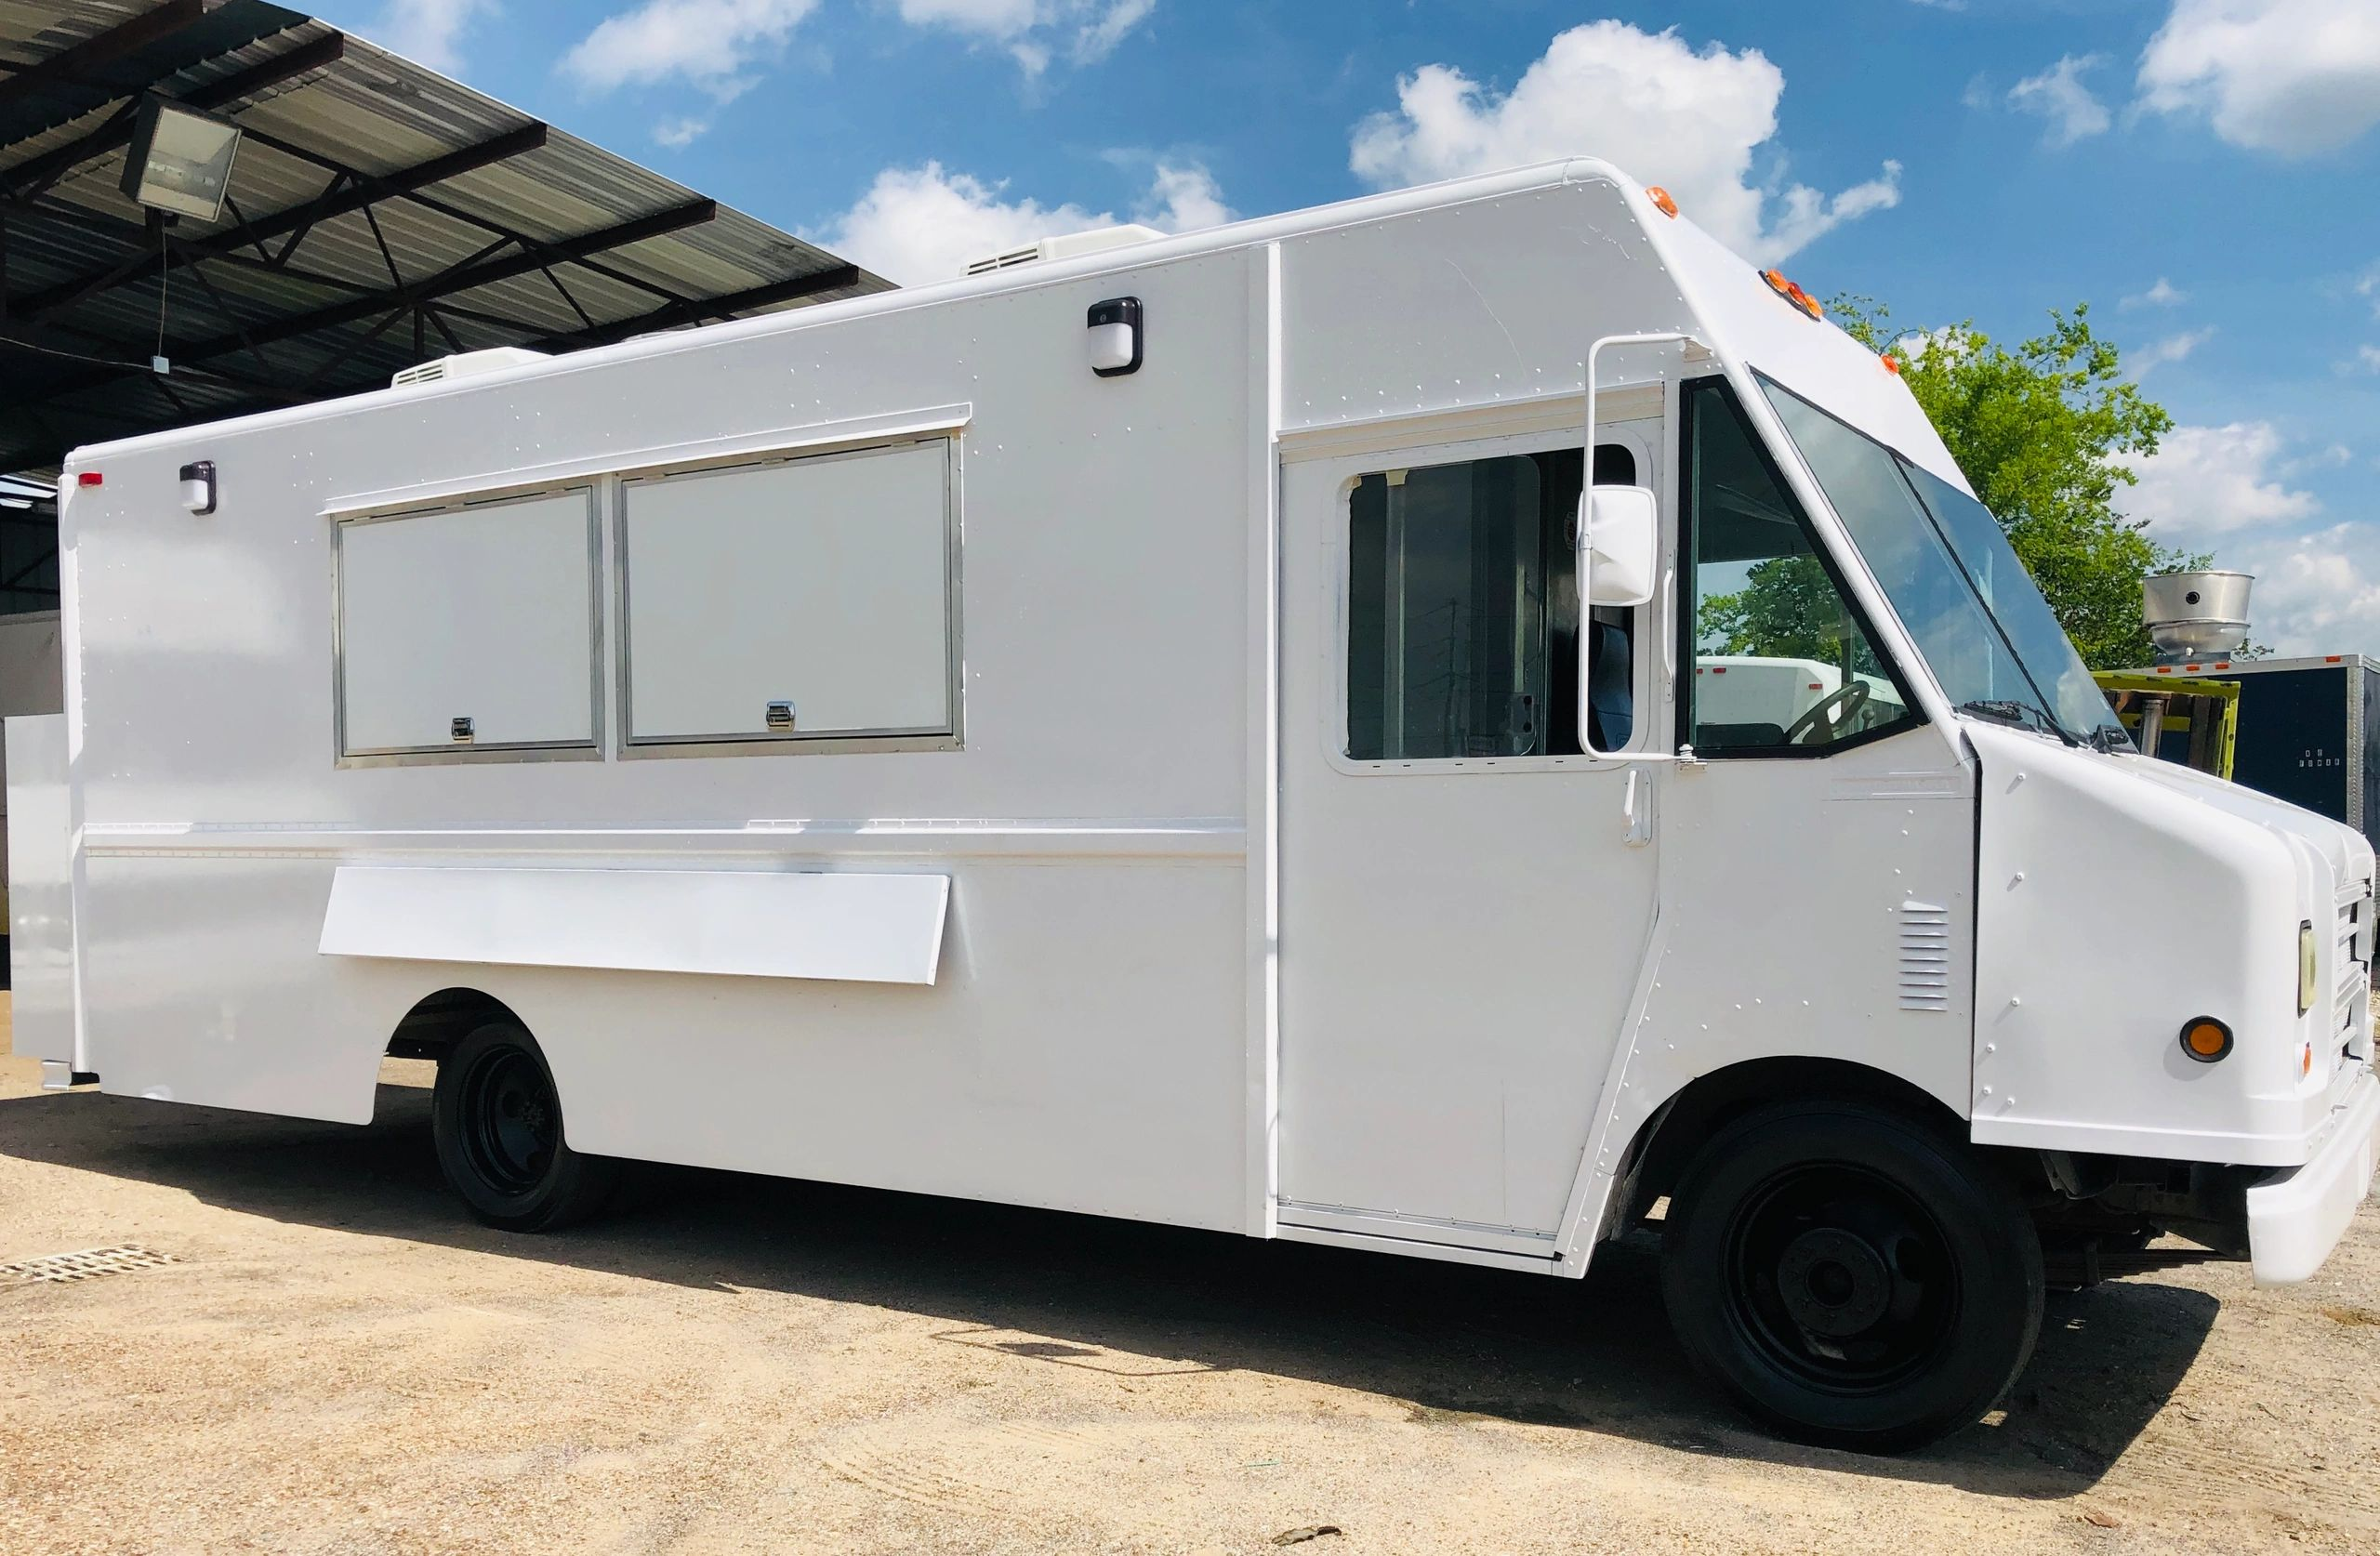 Food Trucks For Sale Near Me >> C 4 Food Trucks Food Truck Builder Food Truck For Sale